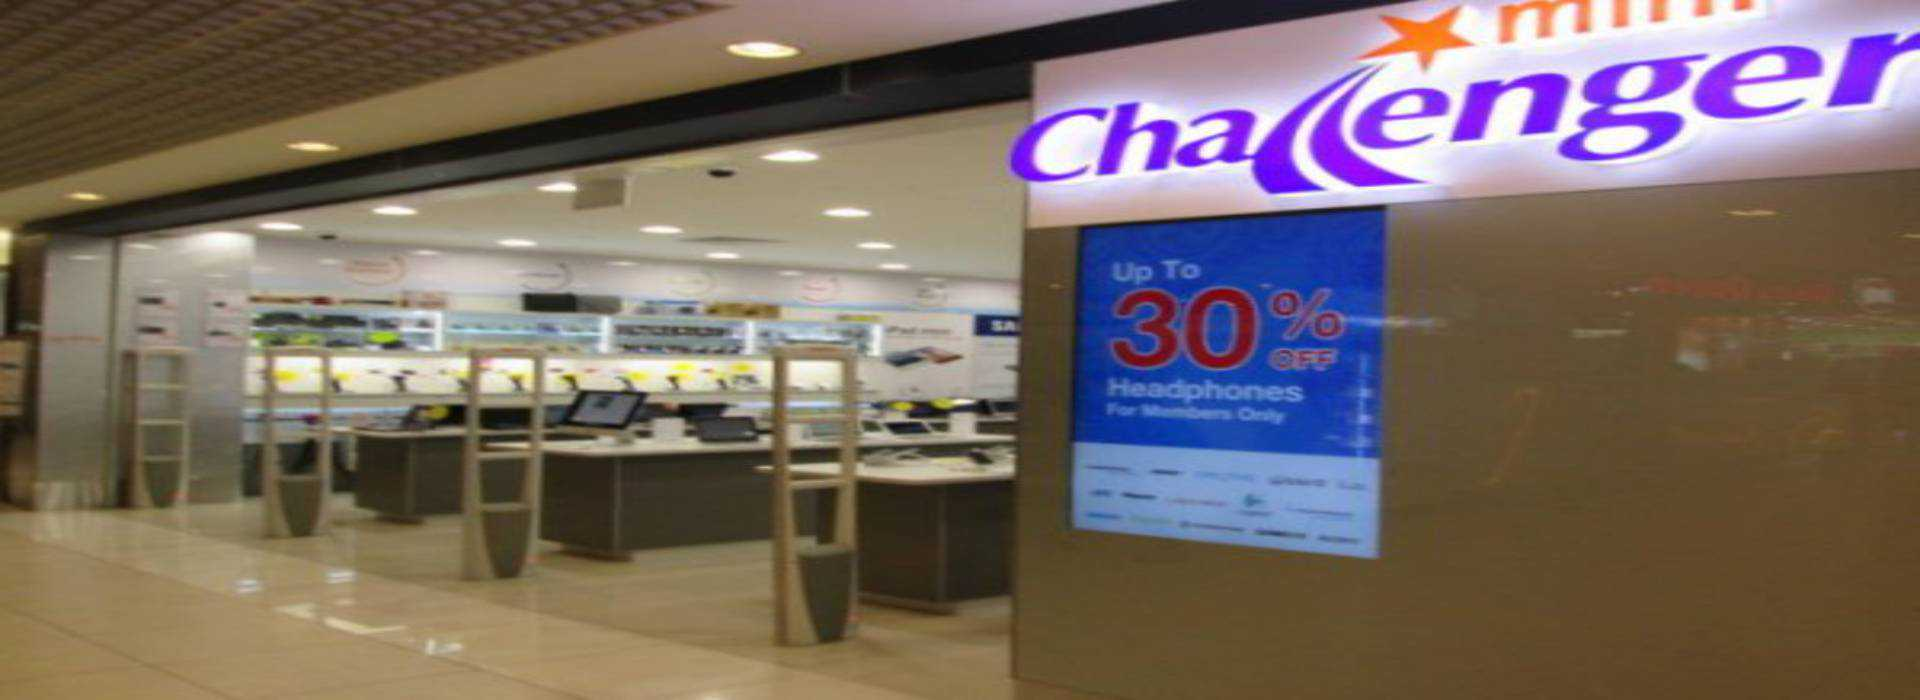 challenger customer service number singapore